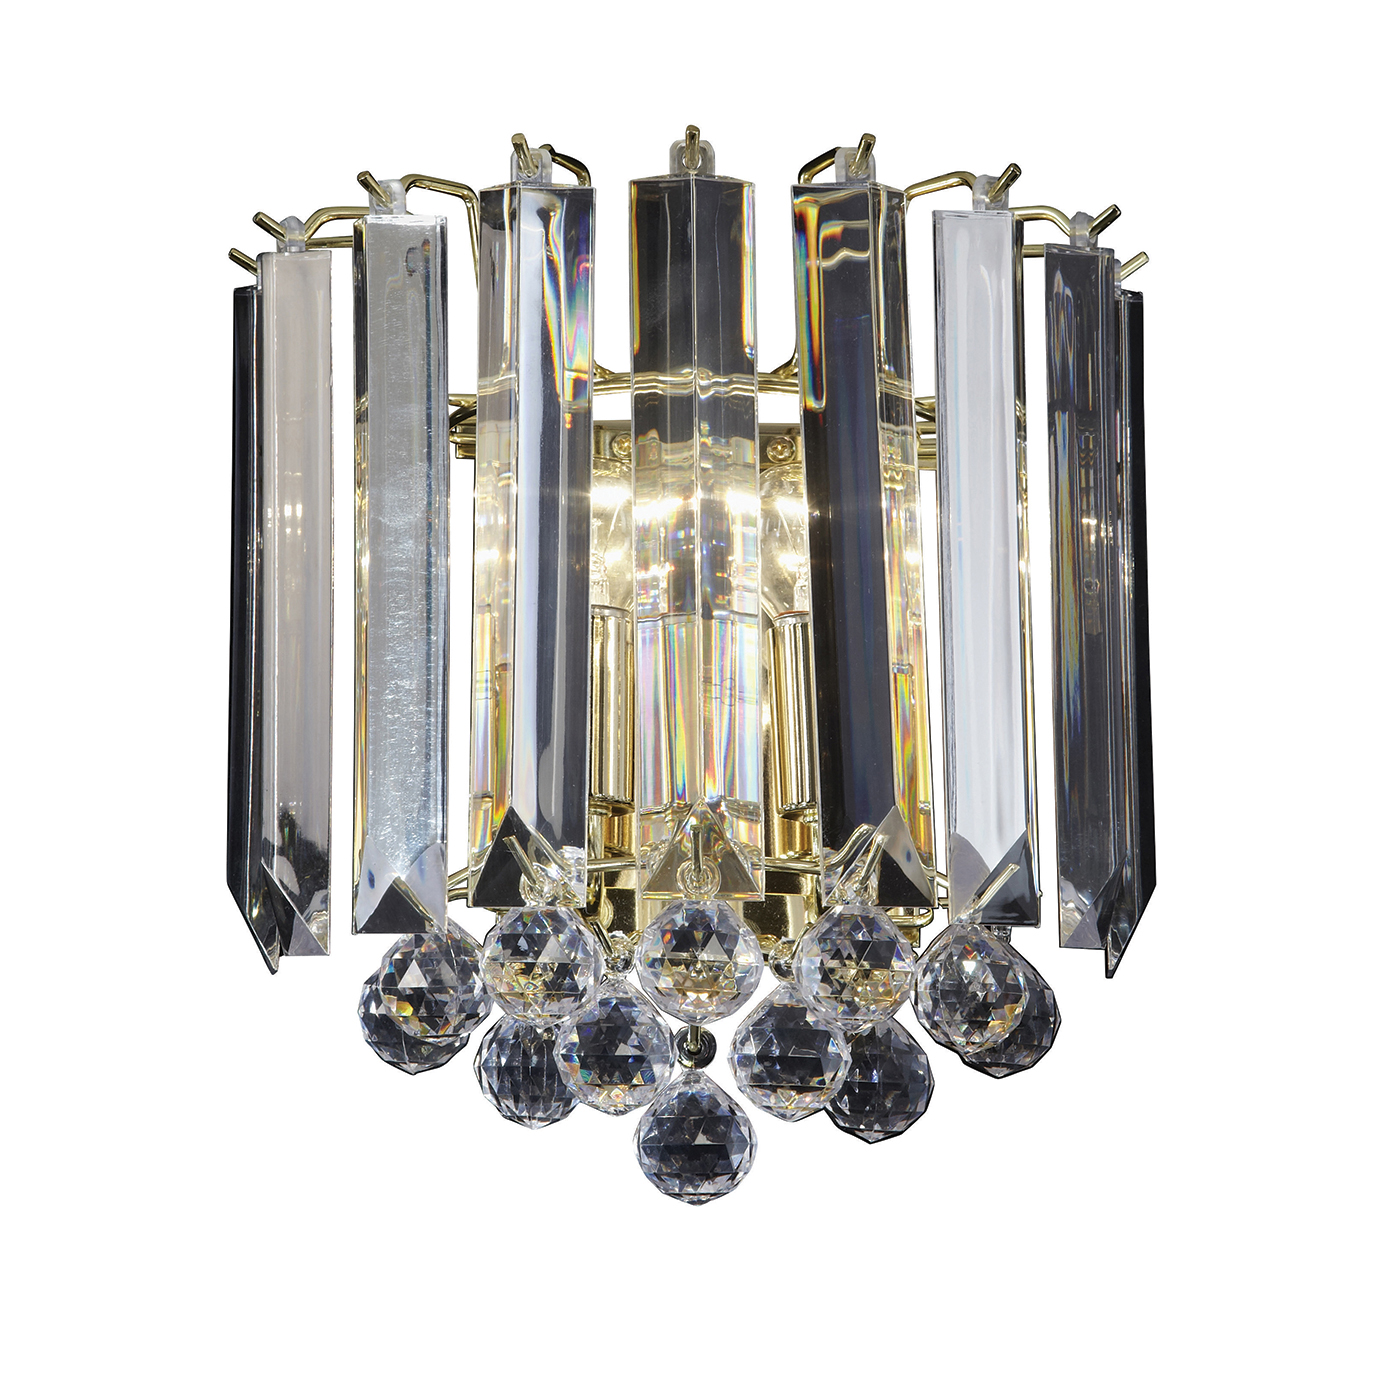 Endon Fargo 2lt wall chandelier light 60W Brass effect plate & clear acrylic